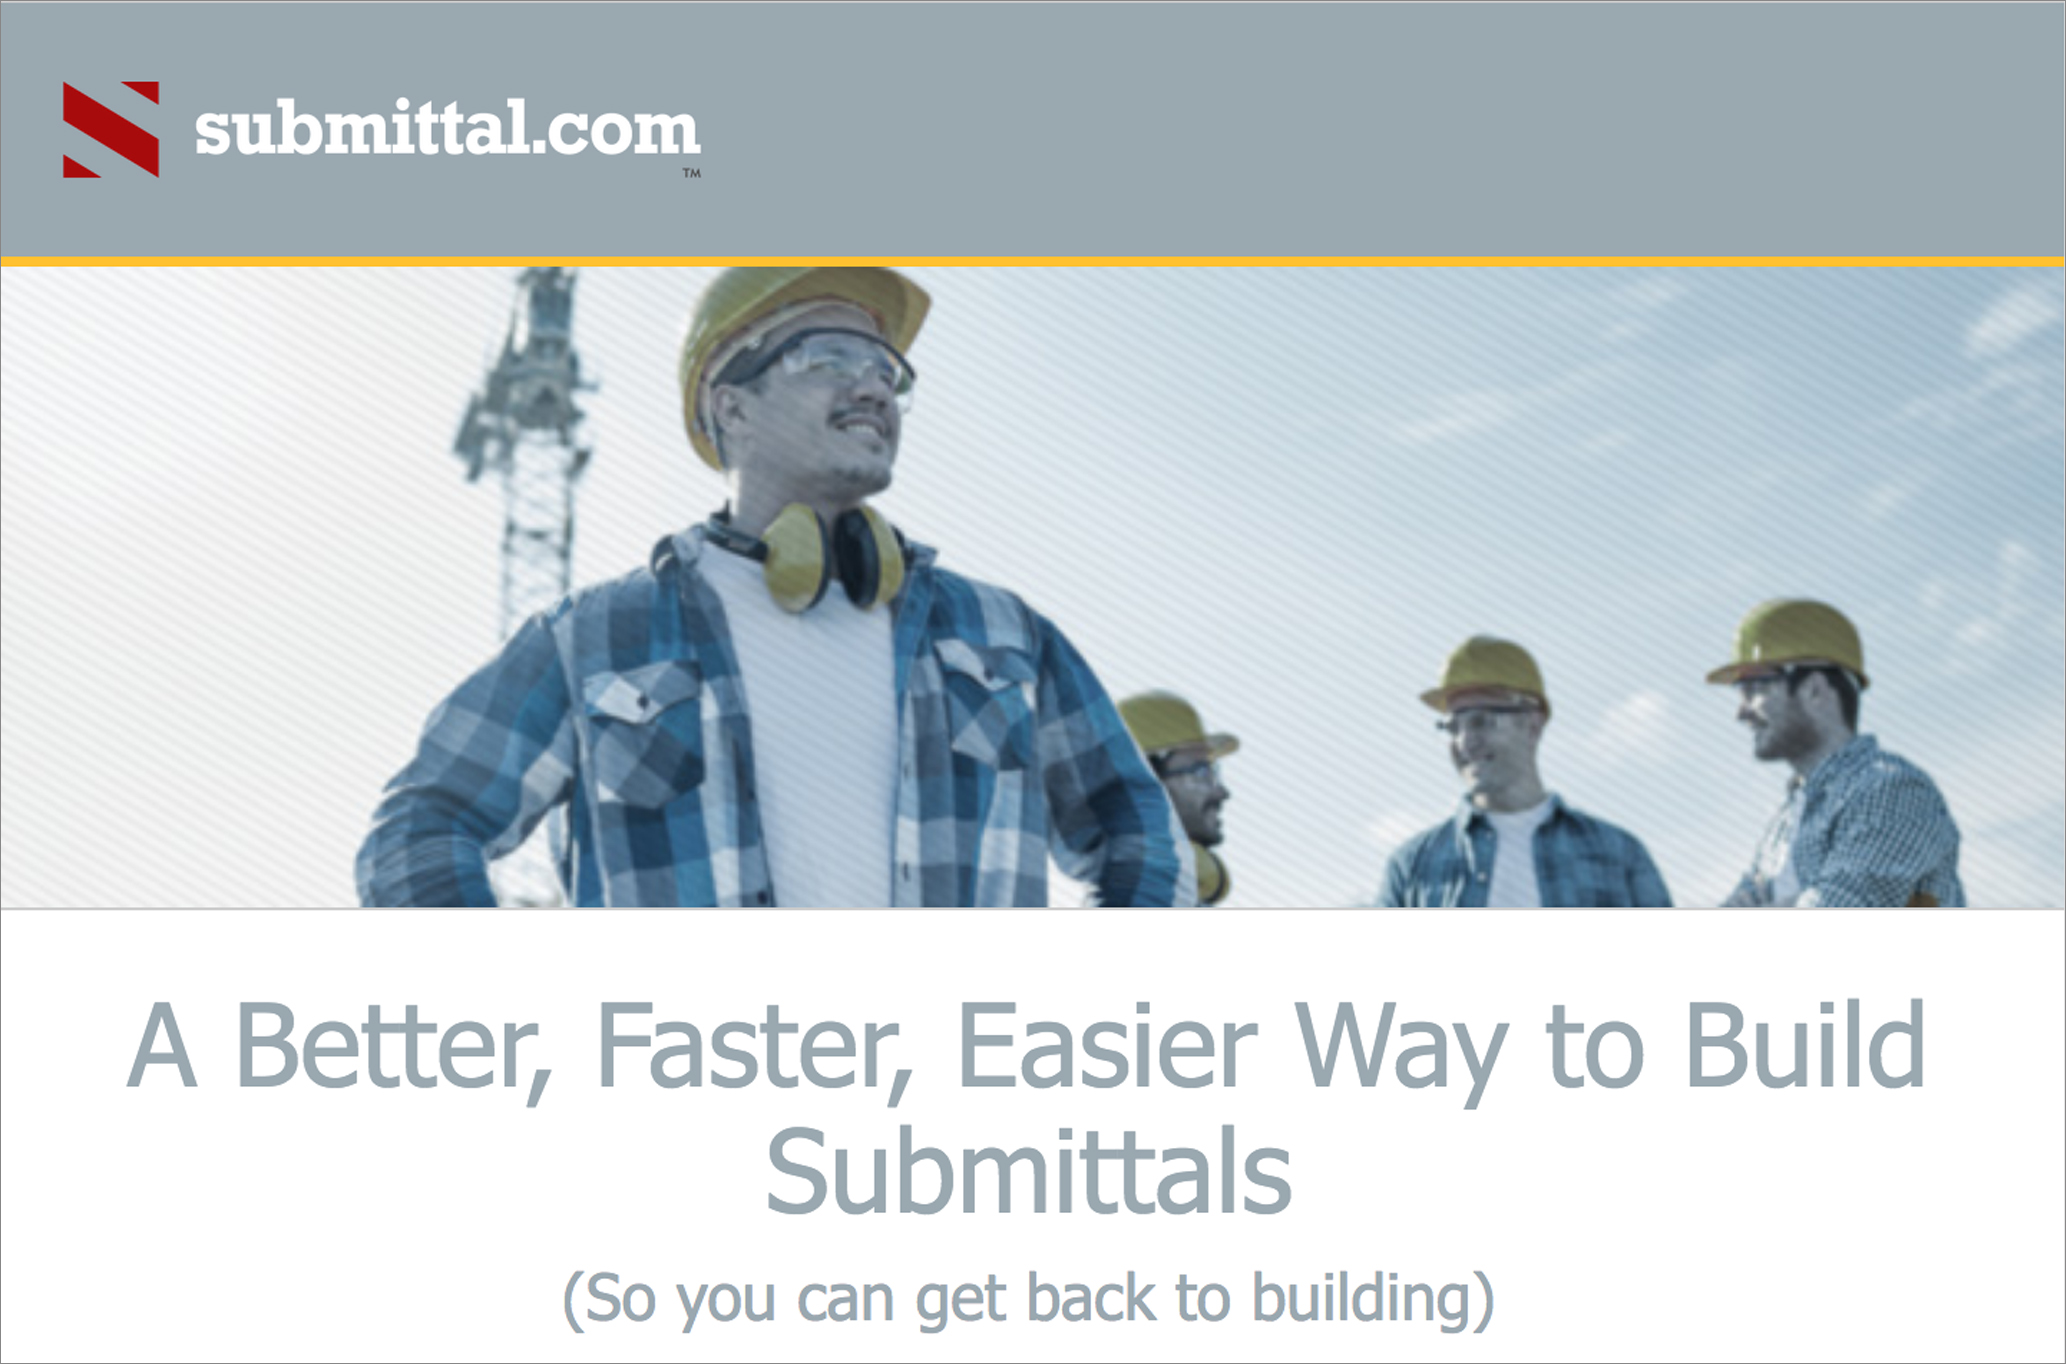 Submittal.com project